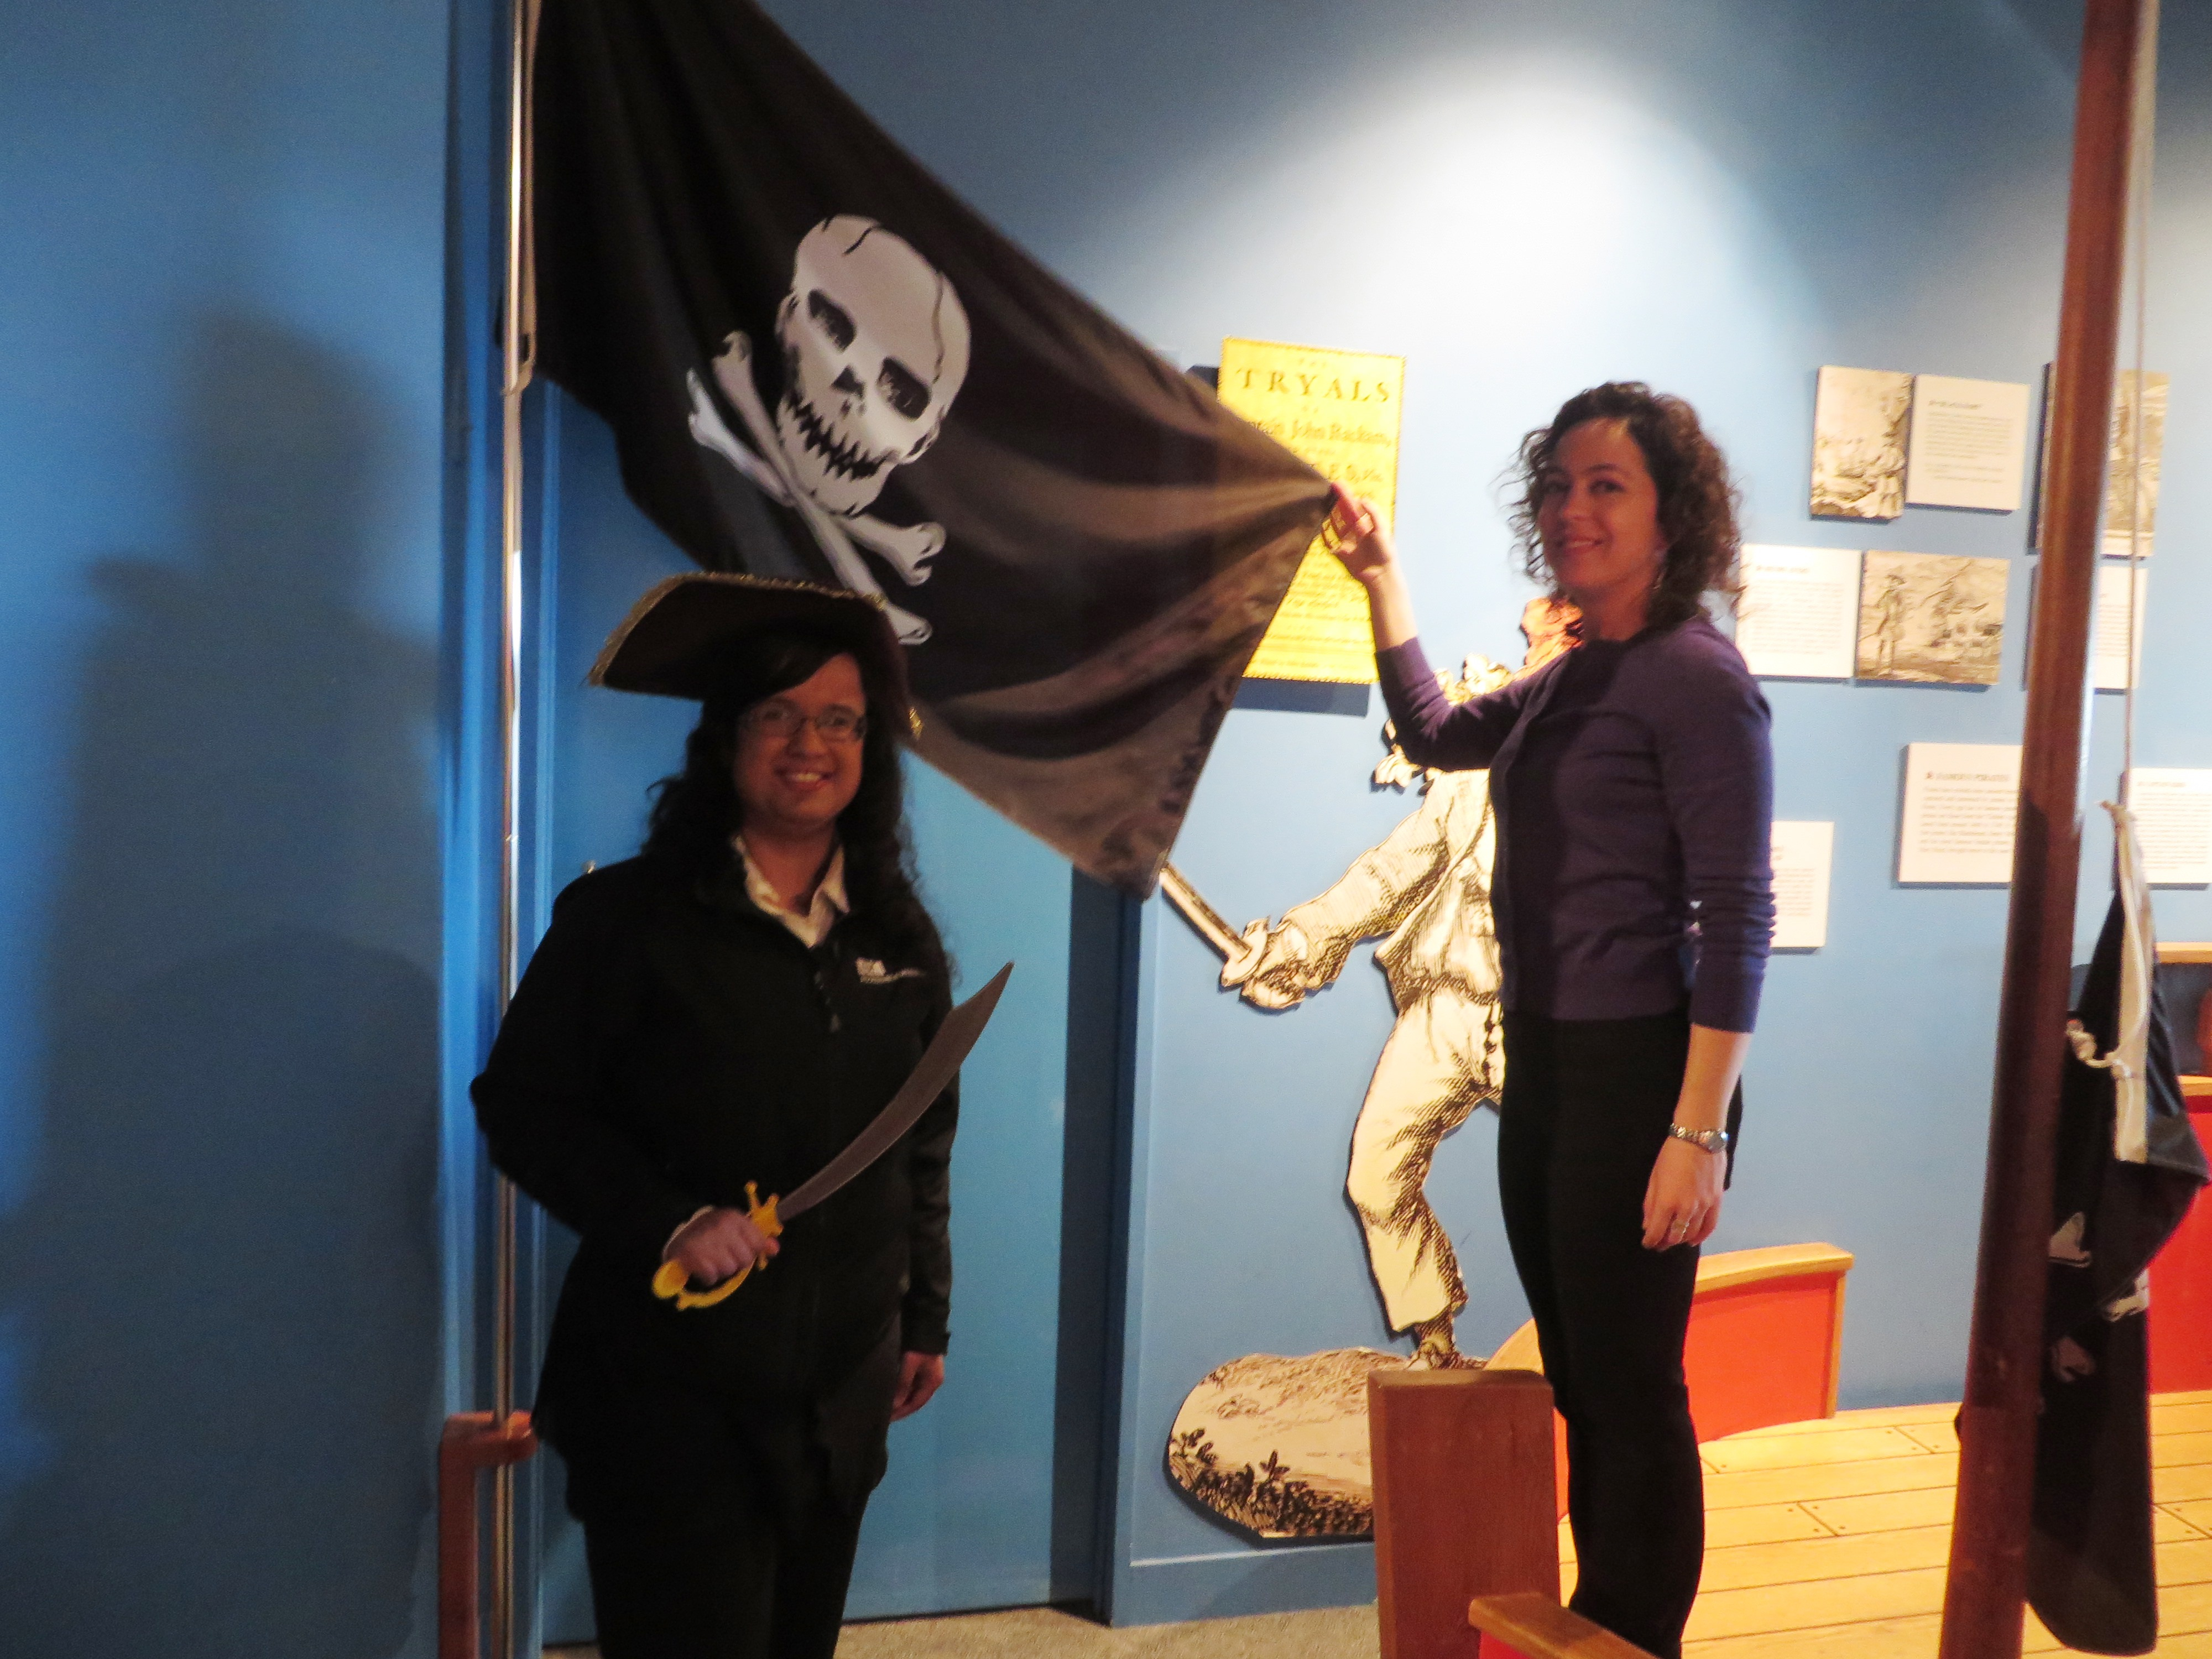 Kristy dressed as a pirate, standing in front of a jolly roger pirate flag